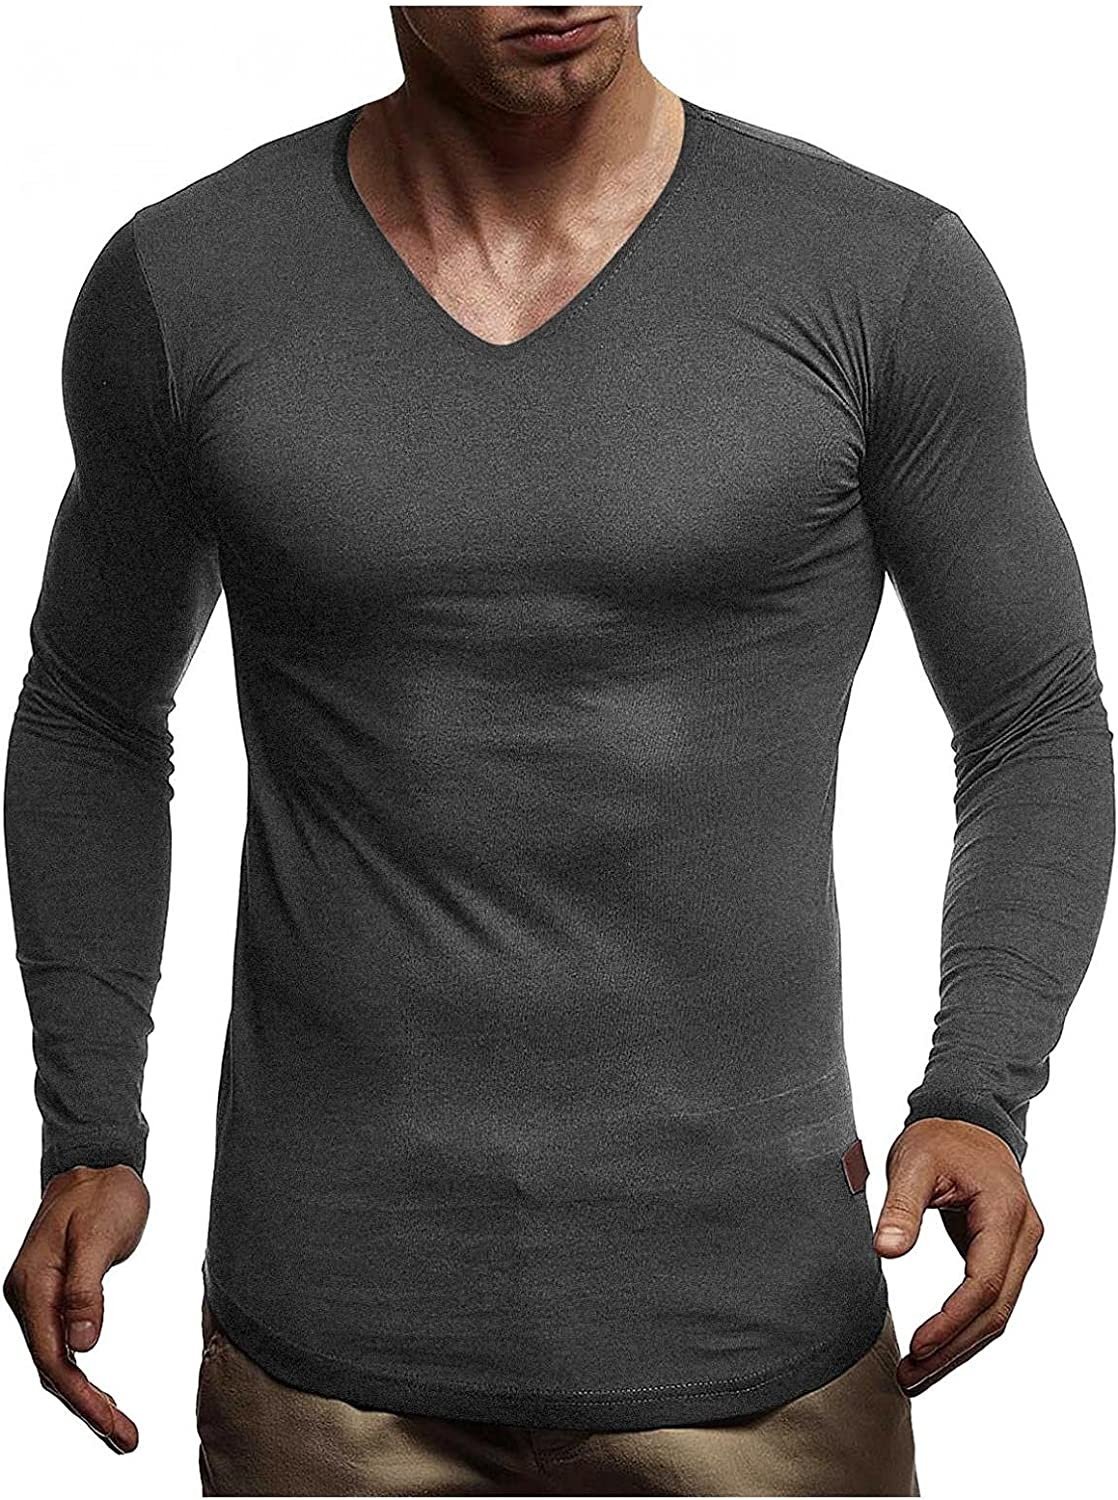 LEIYAN Mens Casual Muscle Shirts Hipster Long Sleeve V-Neck Lightweight Bodybuilding Fitness Gym Workout Tops